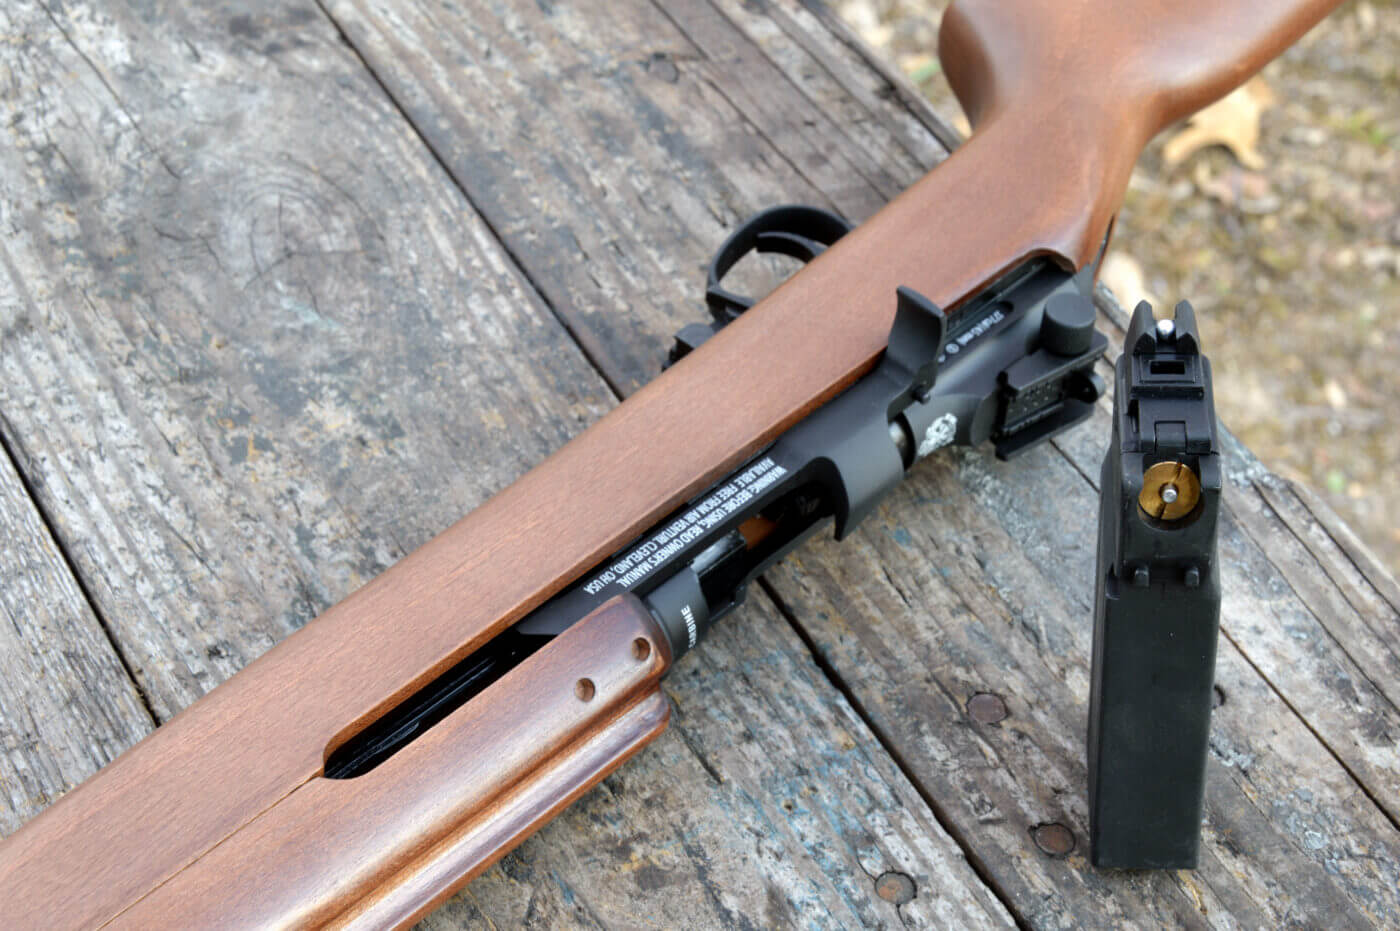 Open action of the M1 Carbine BB gun